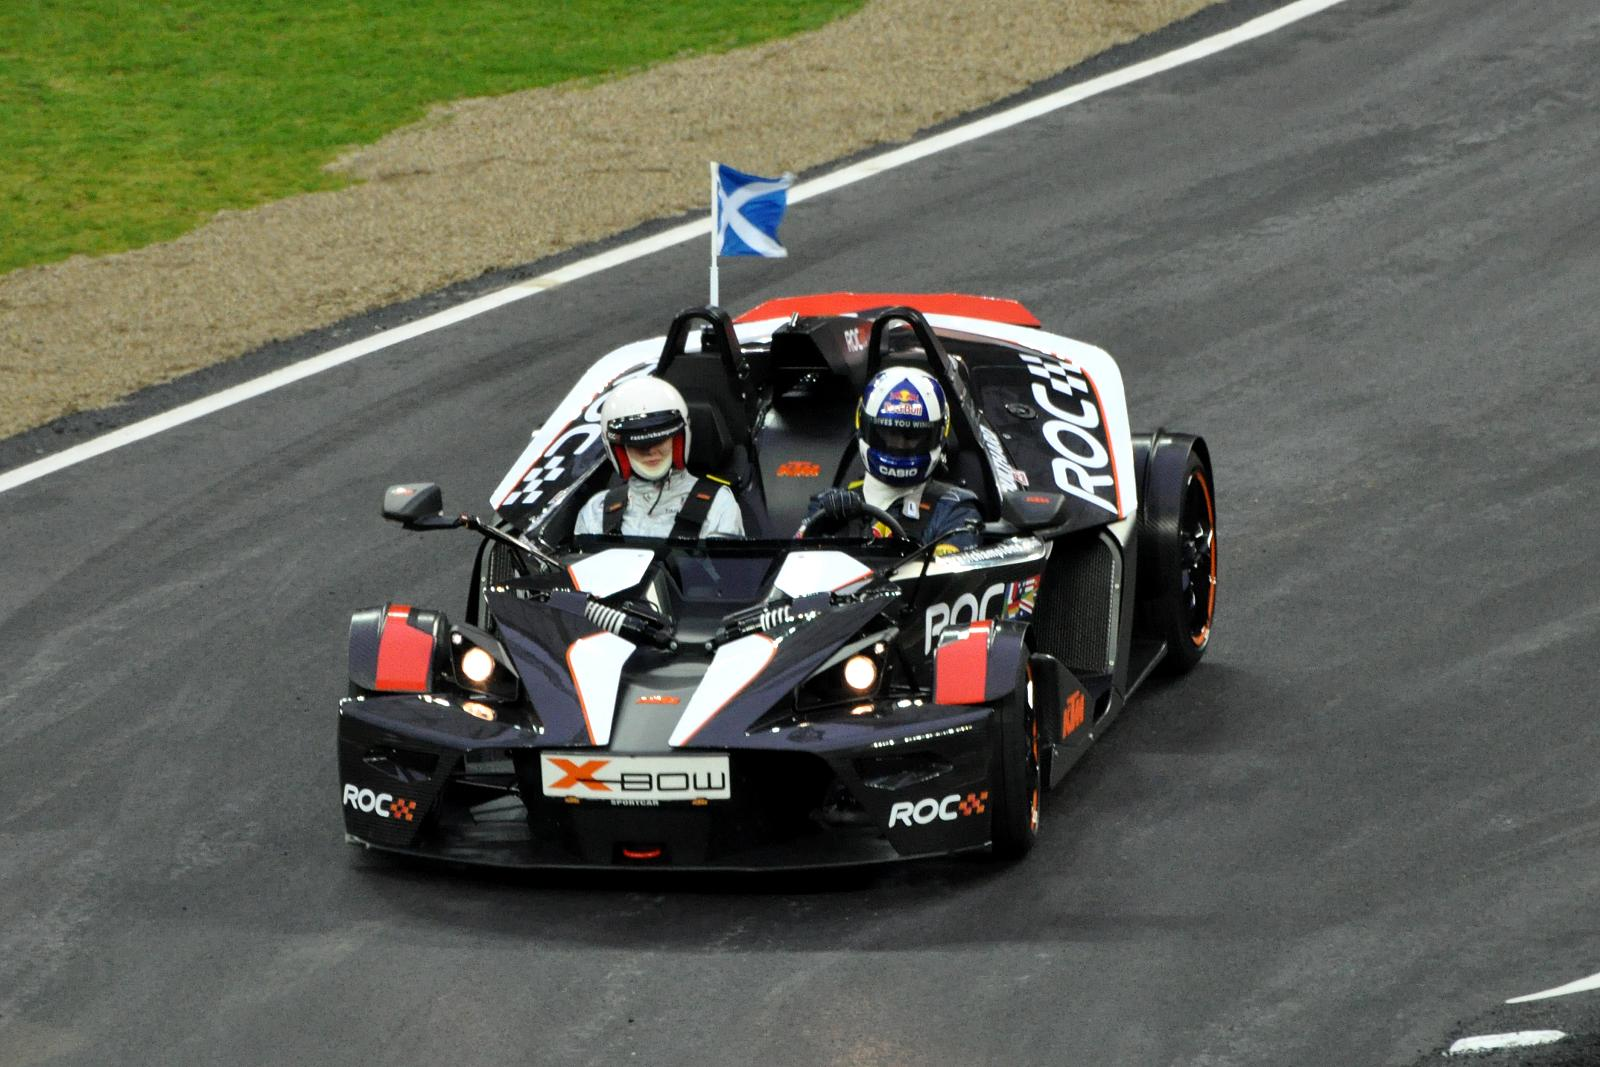 Ktm Wikipedia >> File:2008 ROC KTM X-BOW.jpg - Wikimedia Commons